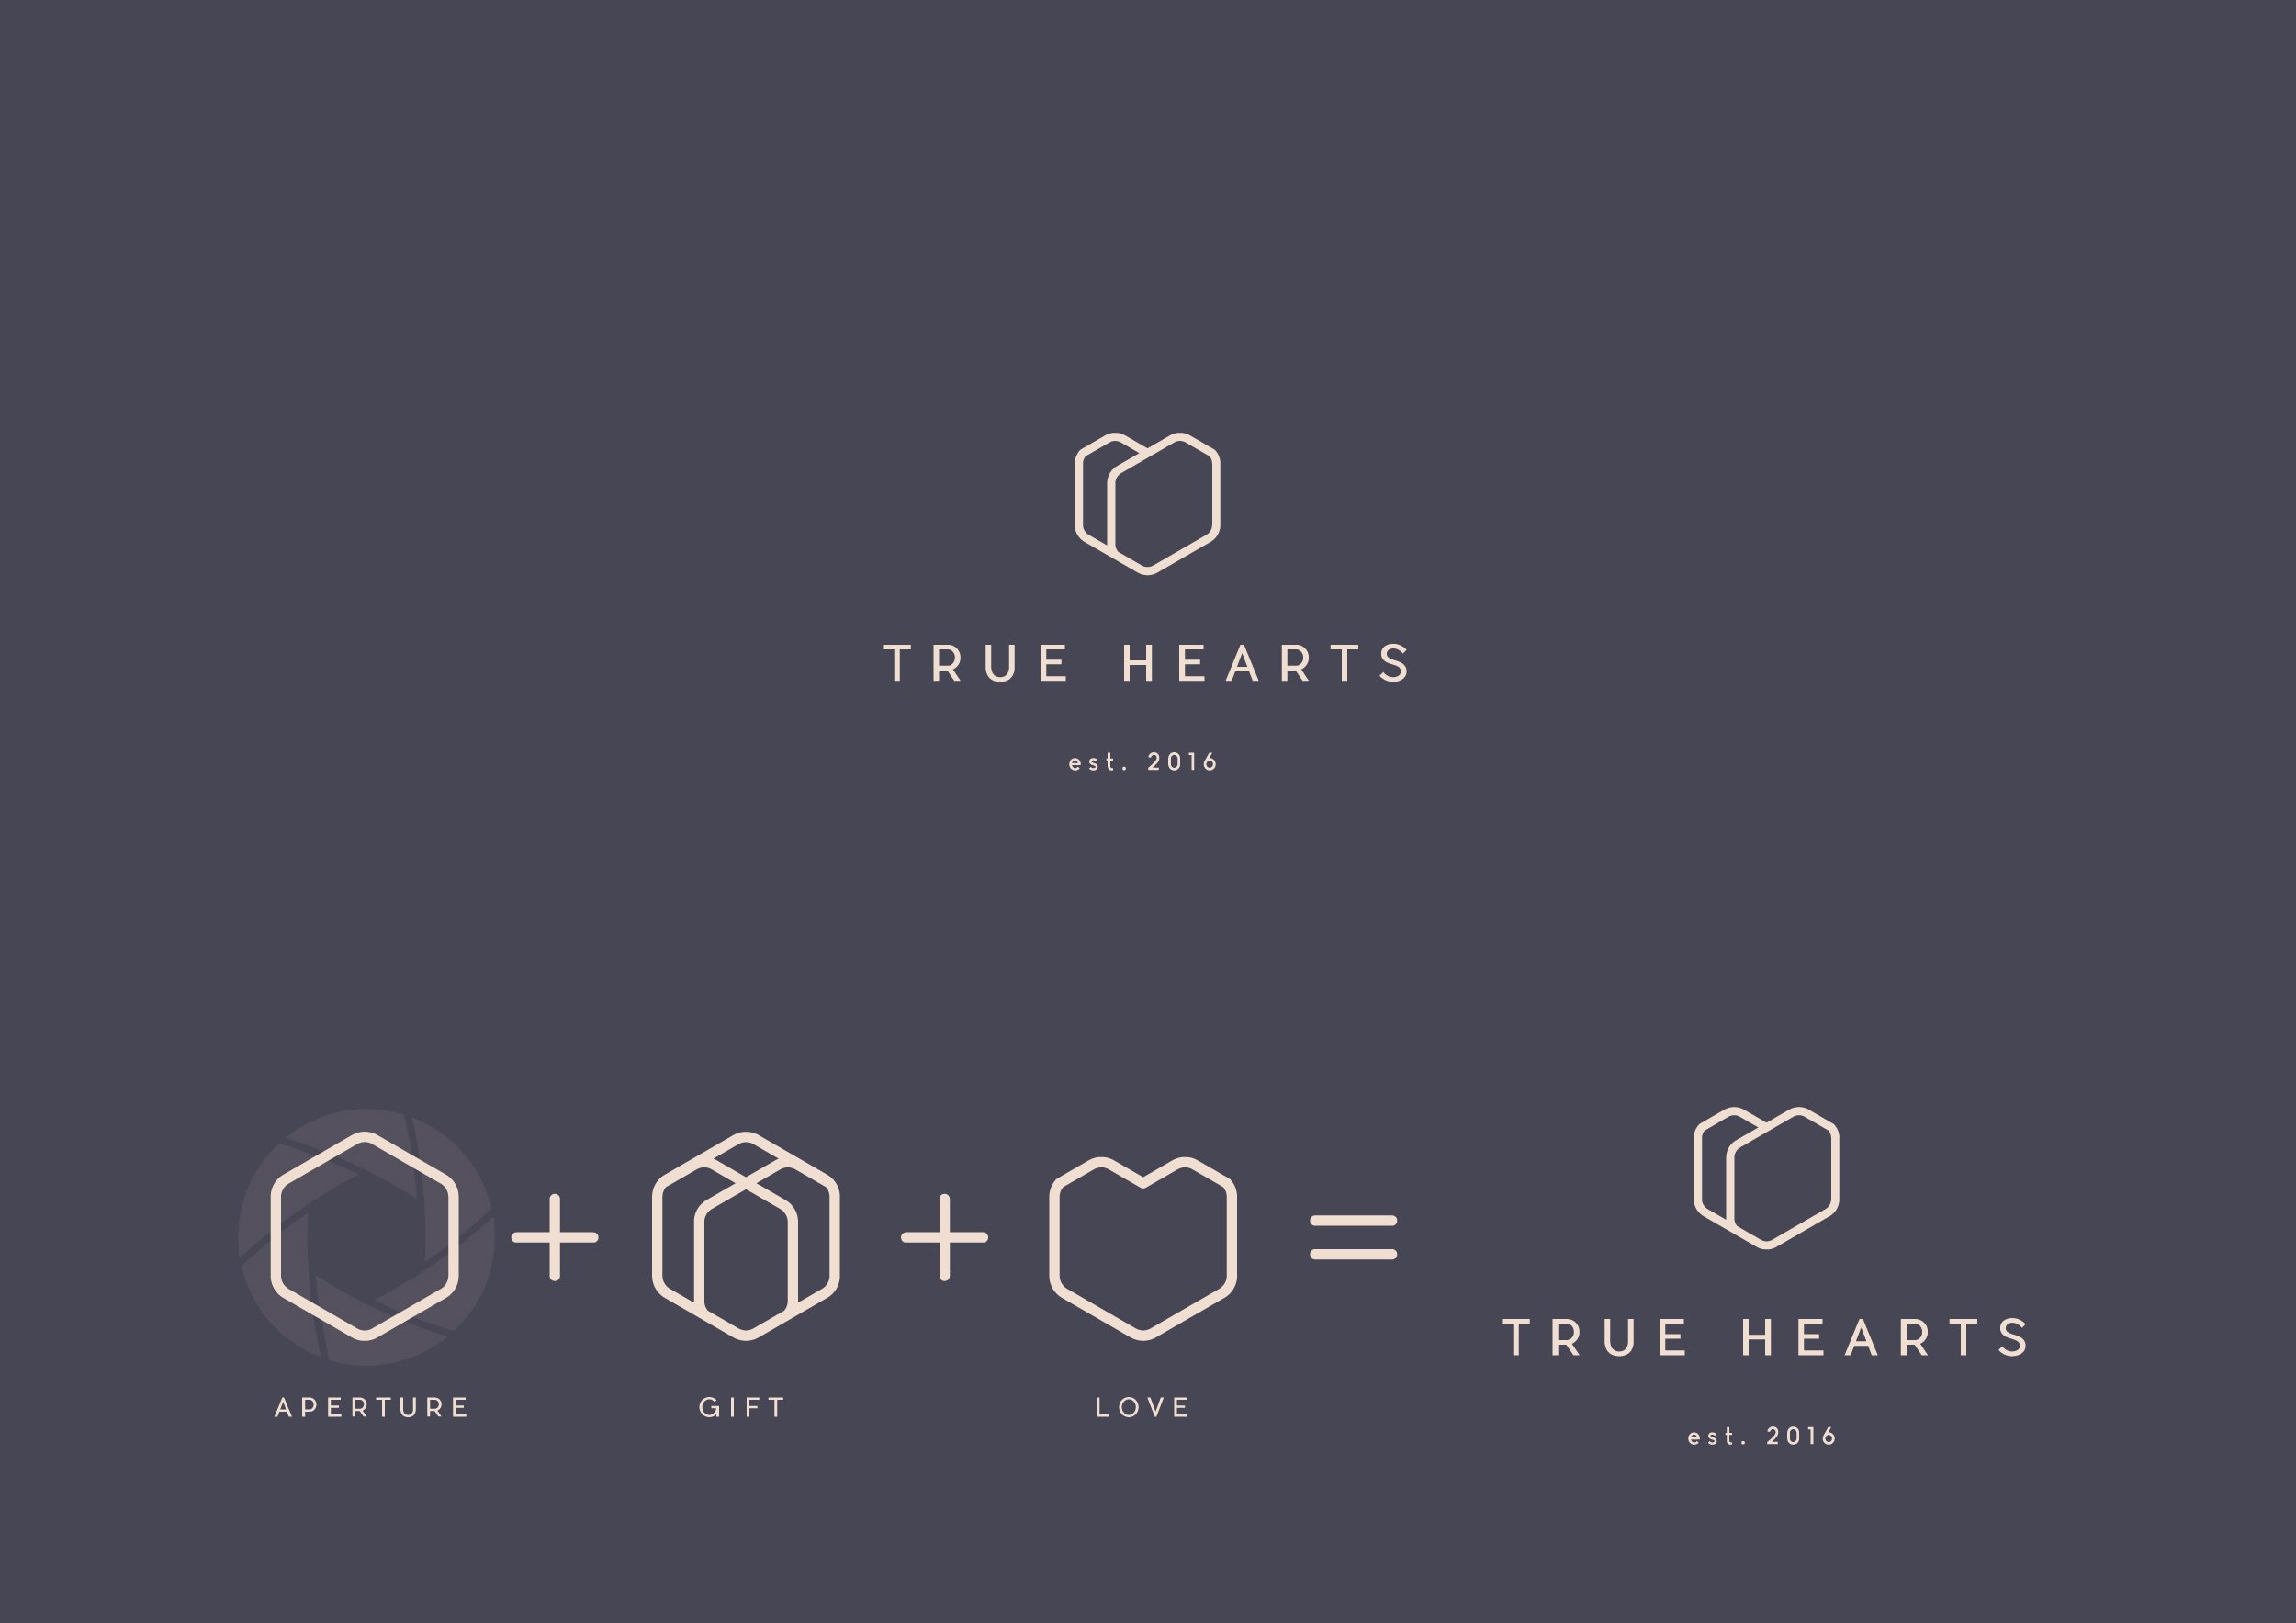 True Hearts - logo design IDI finalist 2017